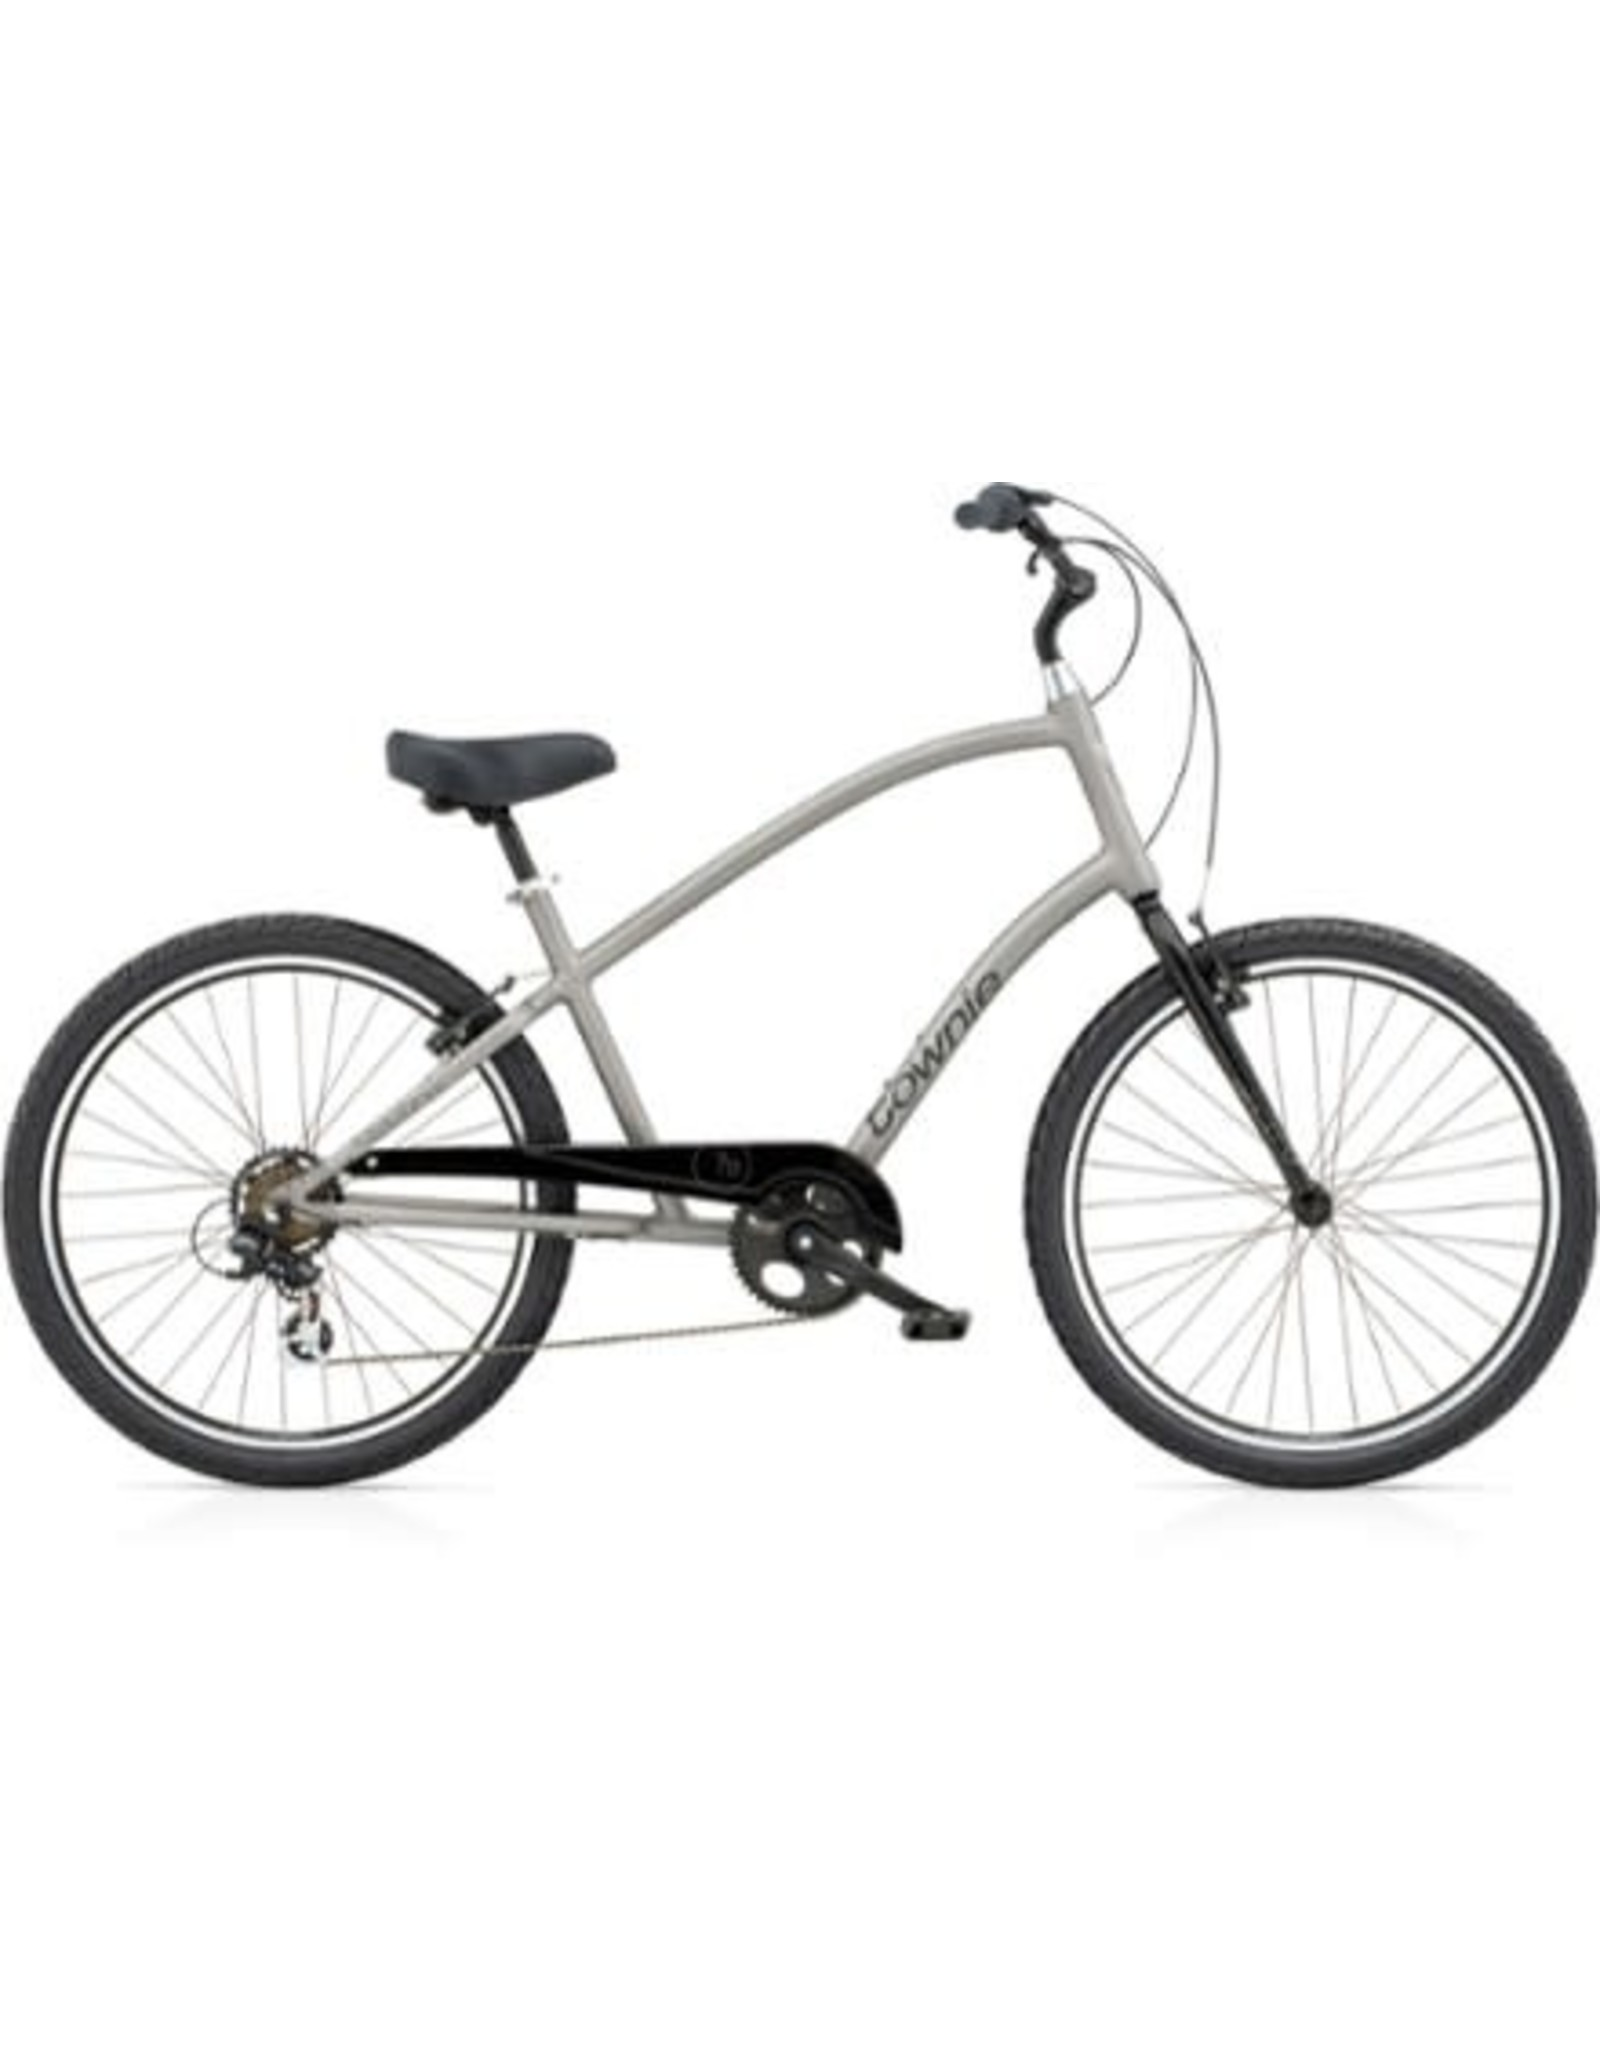 Townie Electra Townie Original 7D Step-Over